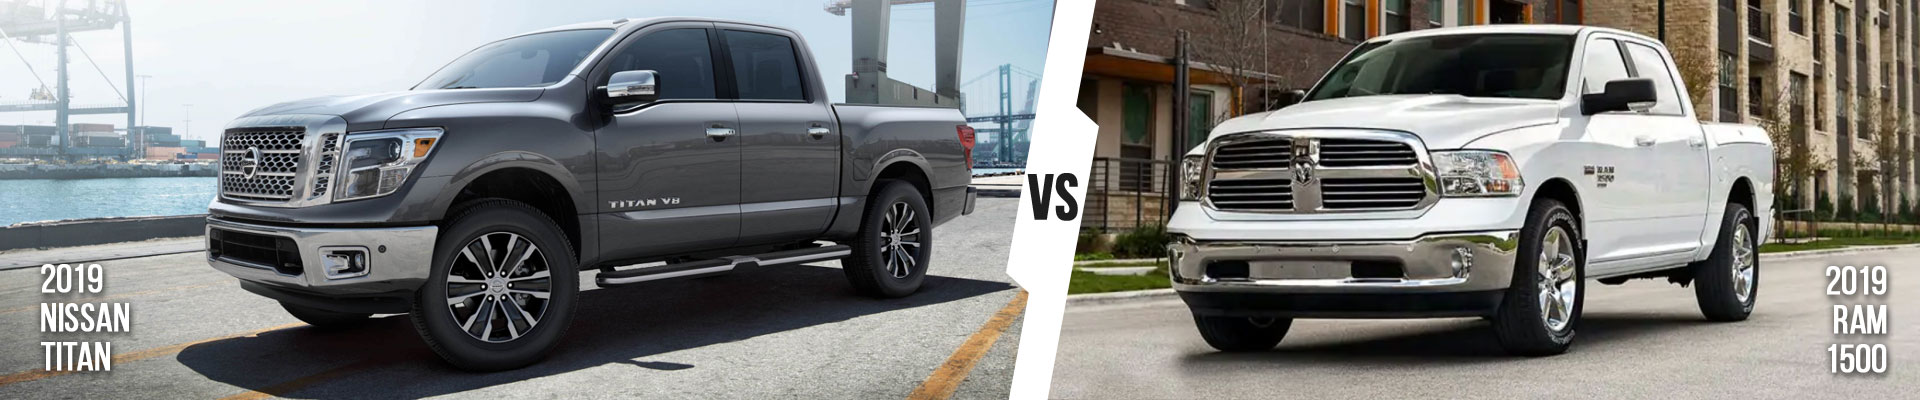 Compare The New 2019 Nissan Titan Pickup Truck Vs. Ram 1500 In Fort Myers, FL